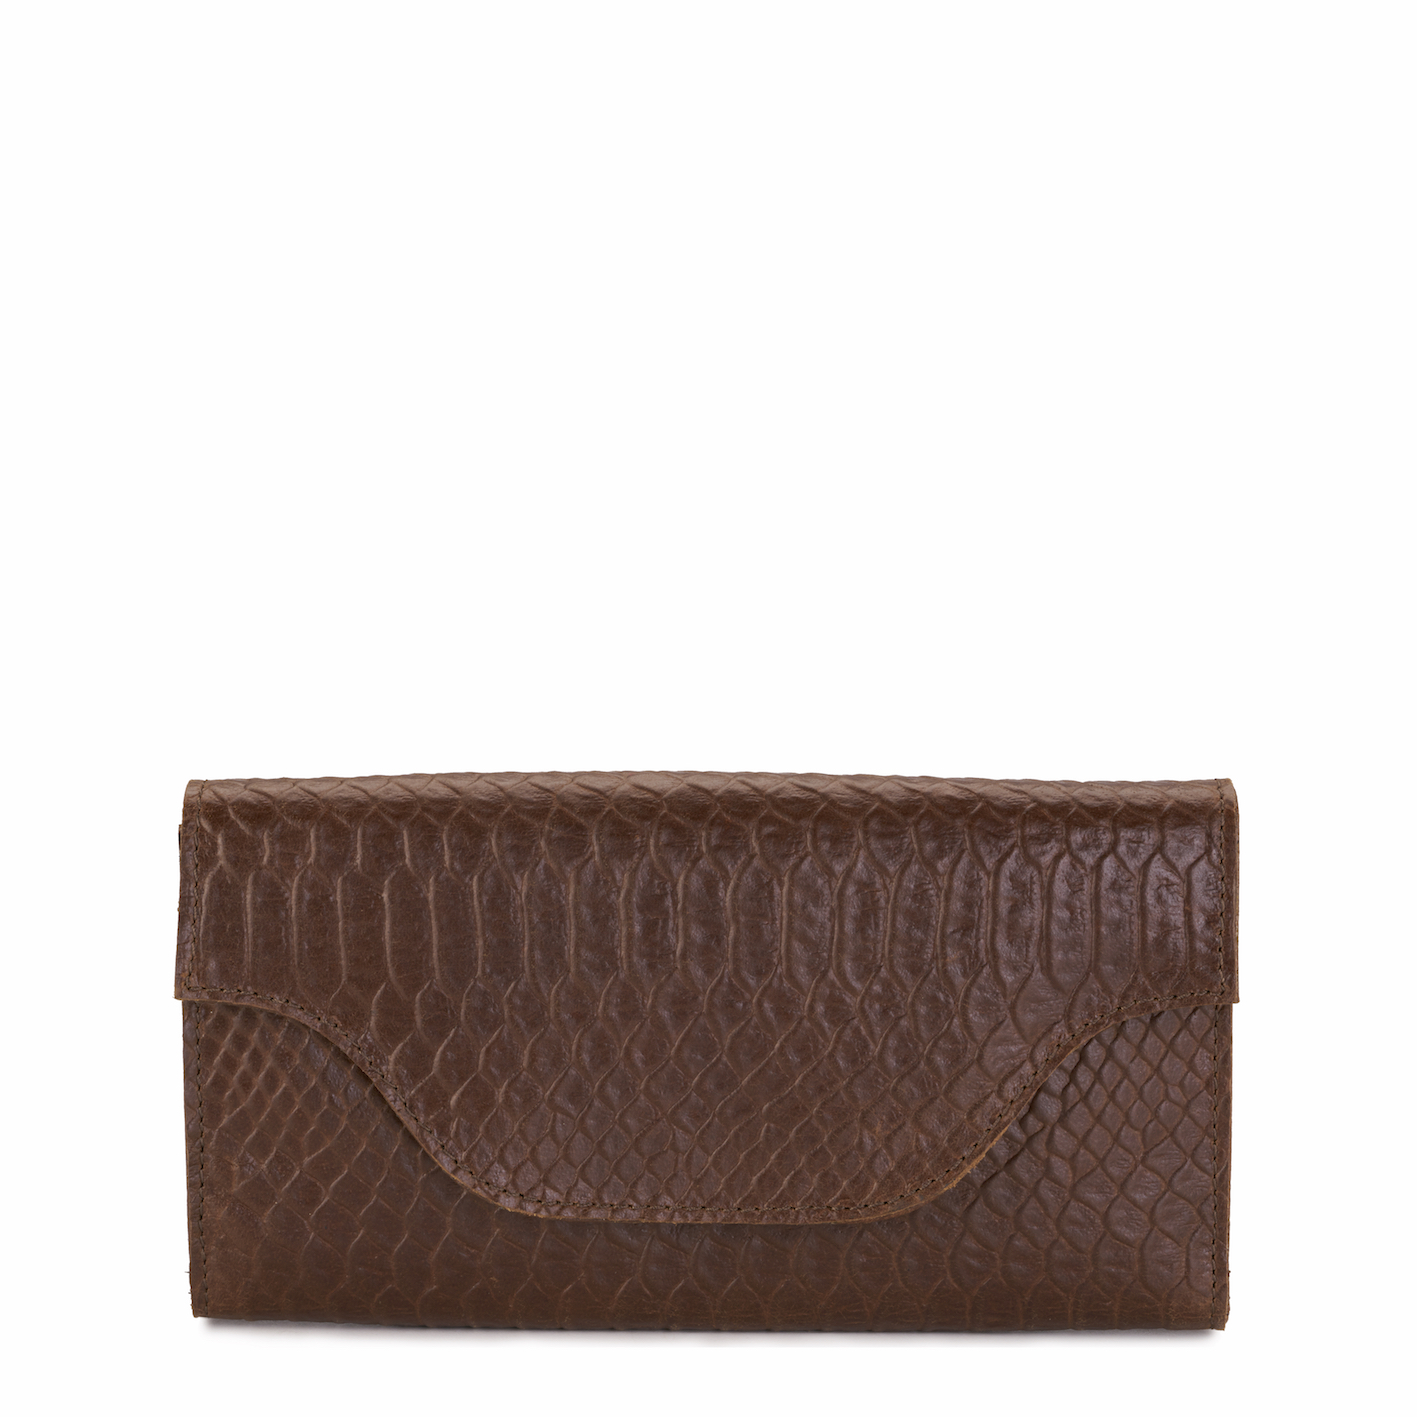 MY CARRY BAG Wallet Large - anaconda brandy